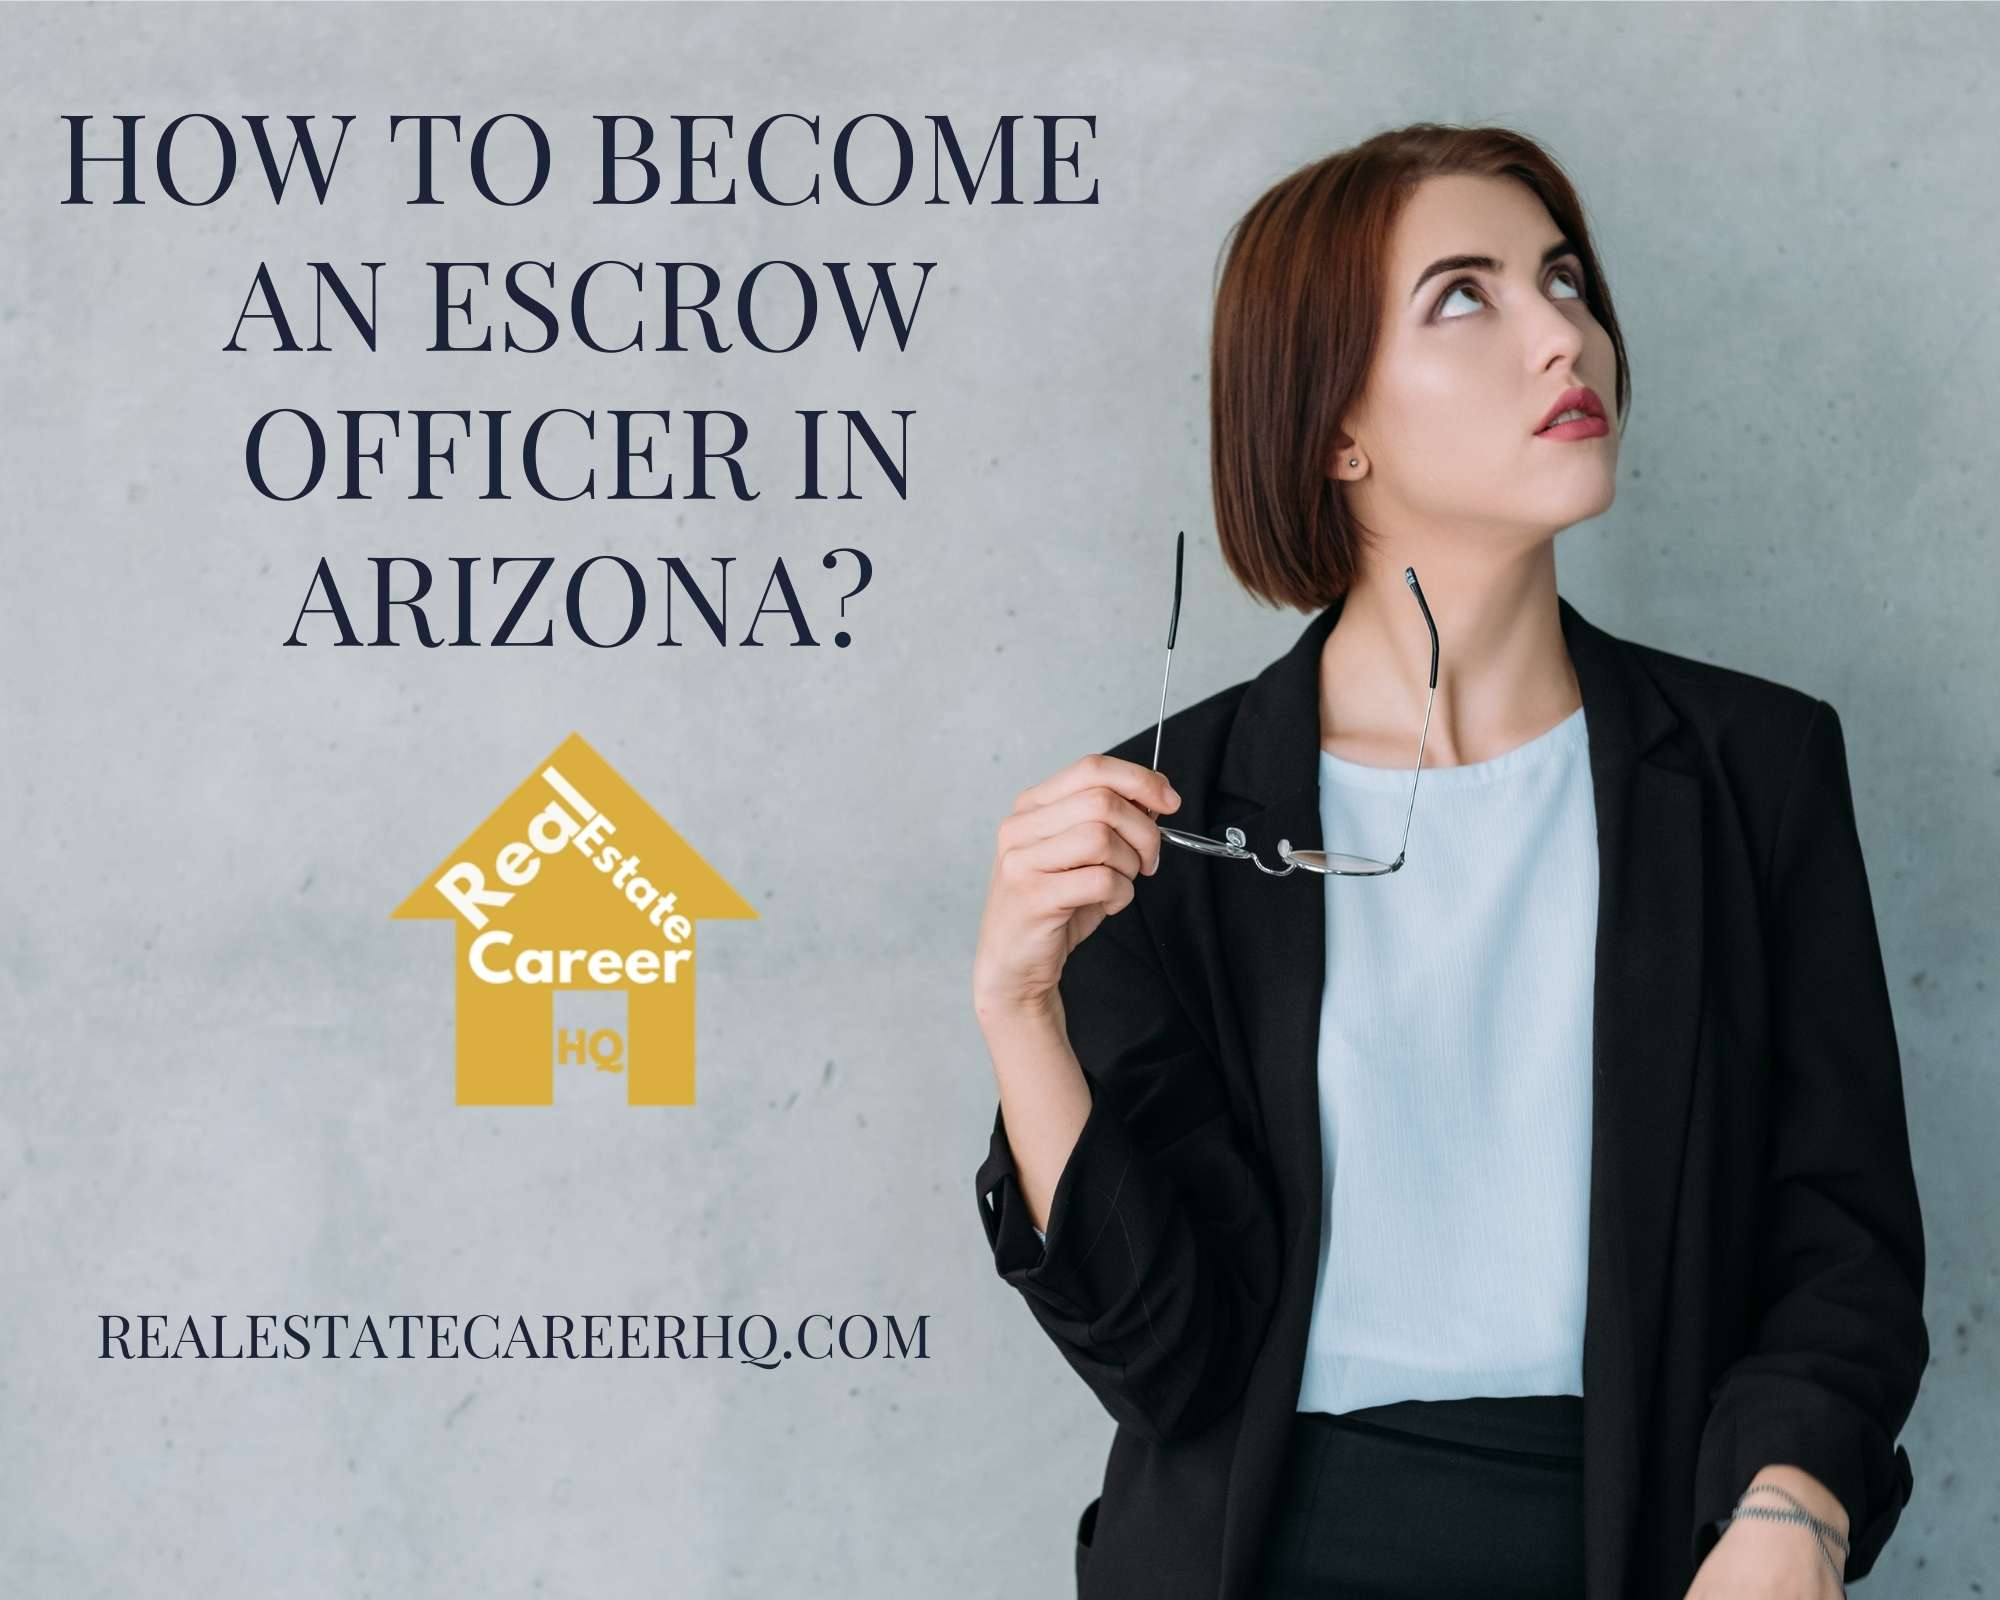 How to Become an Escrow officer in Arizona?